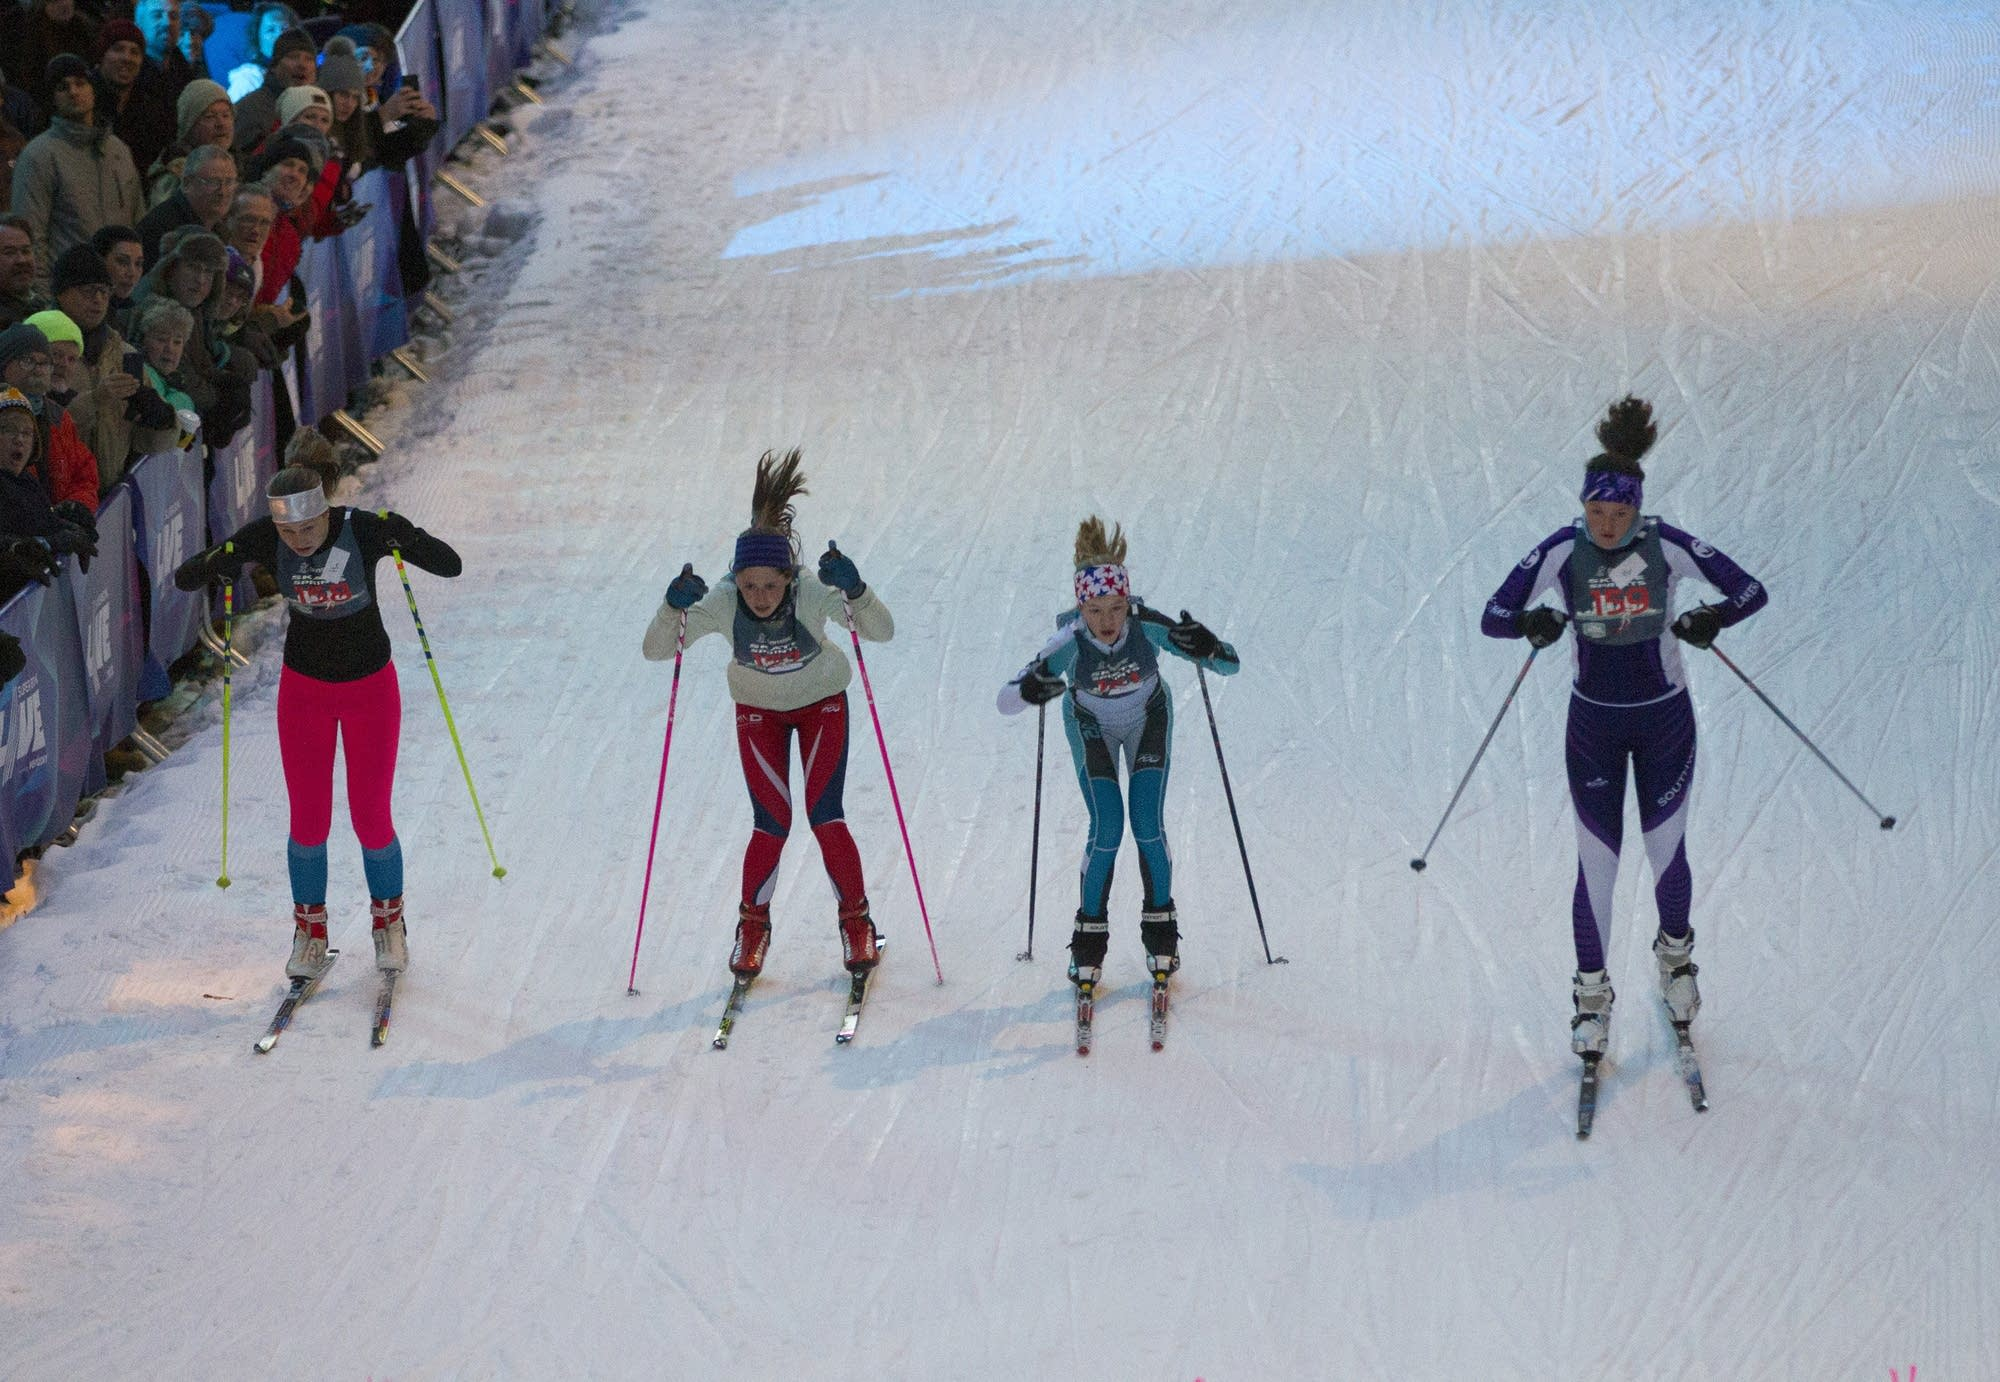 Young nordic skiers rapidly pick up speed at the start of their sprint.